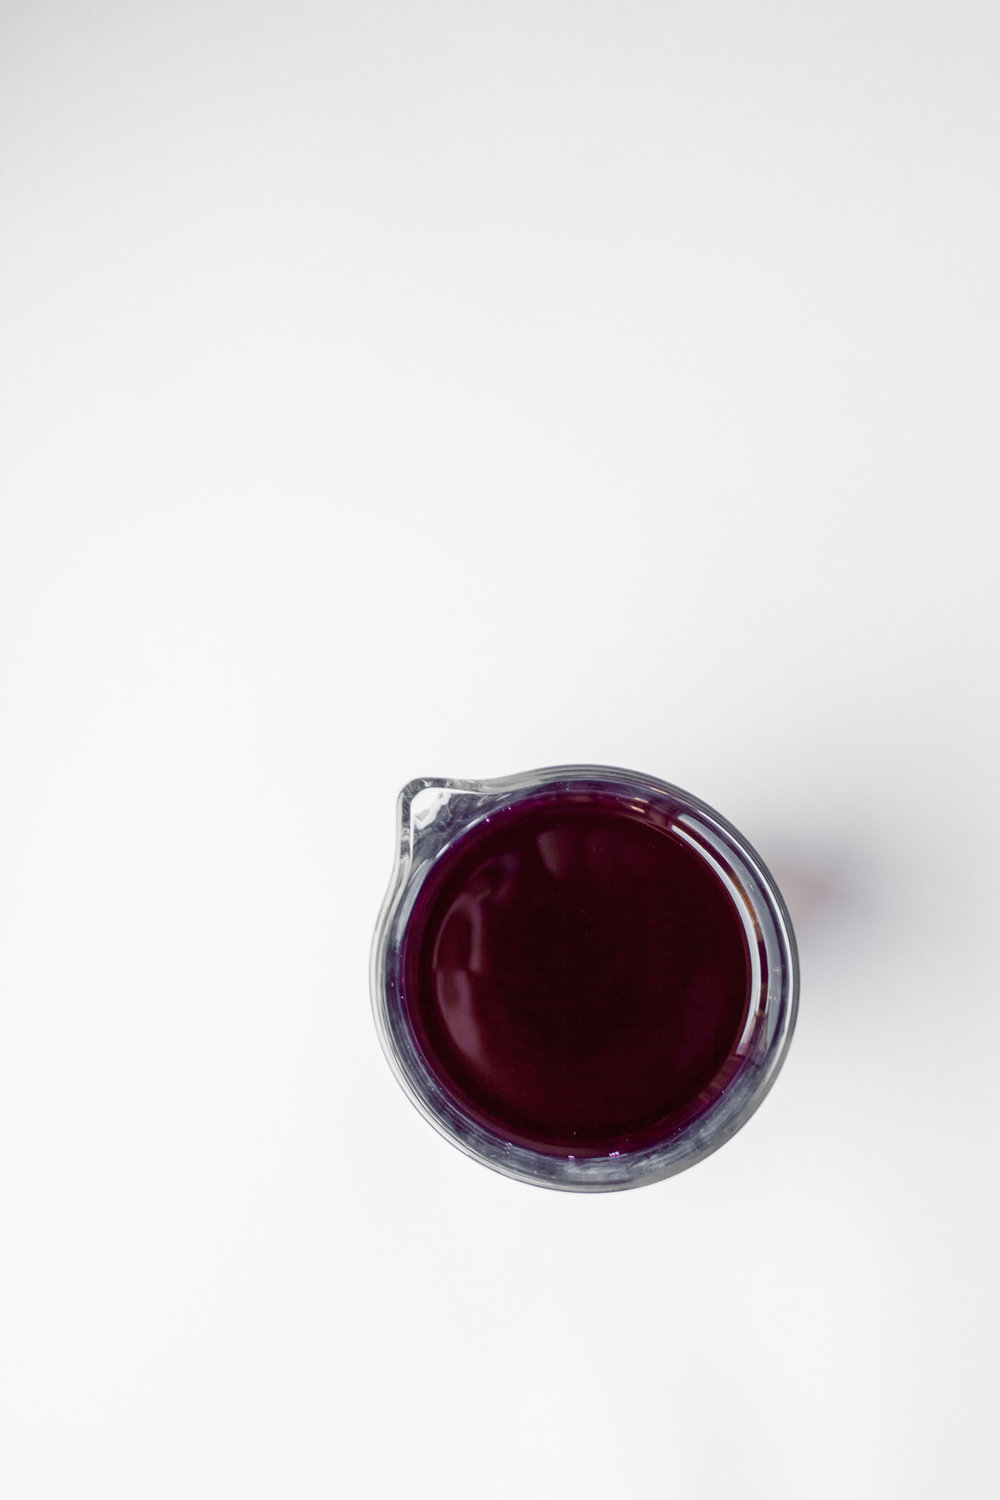 Traditional Nutrition - Superfood Beet Kvass Tonic Recipe